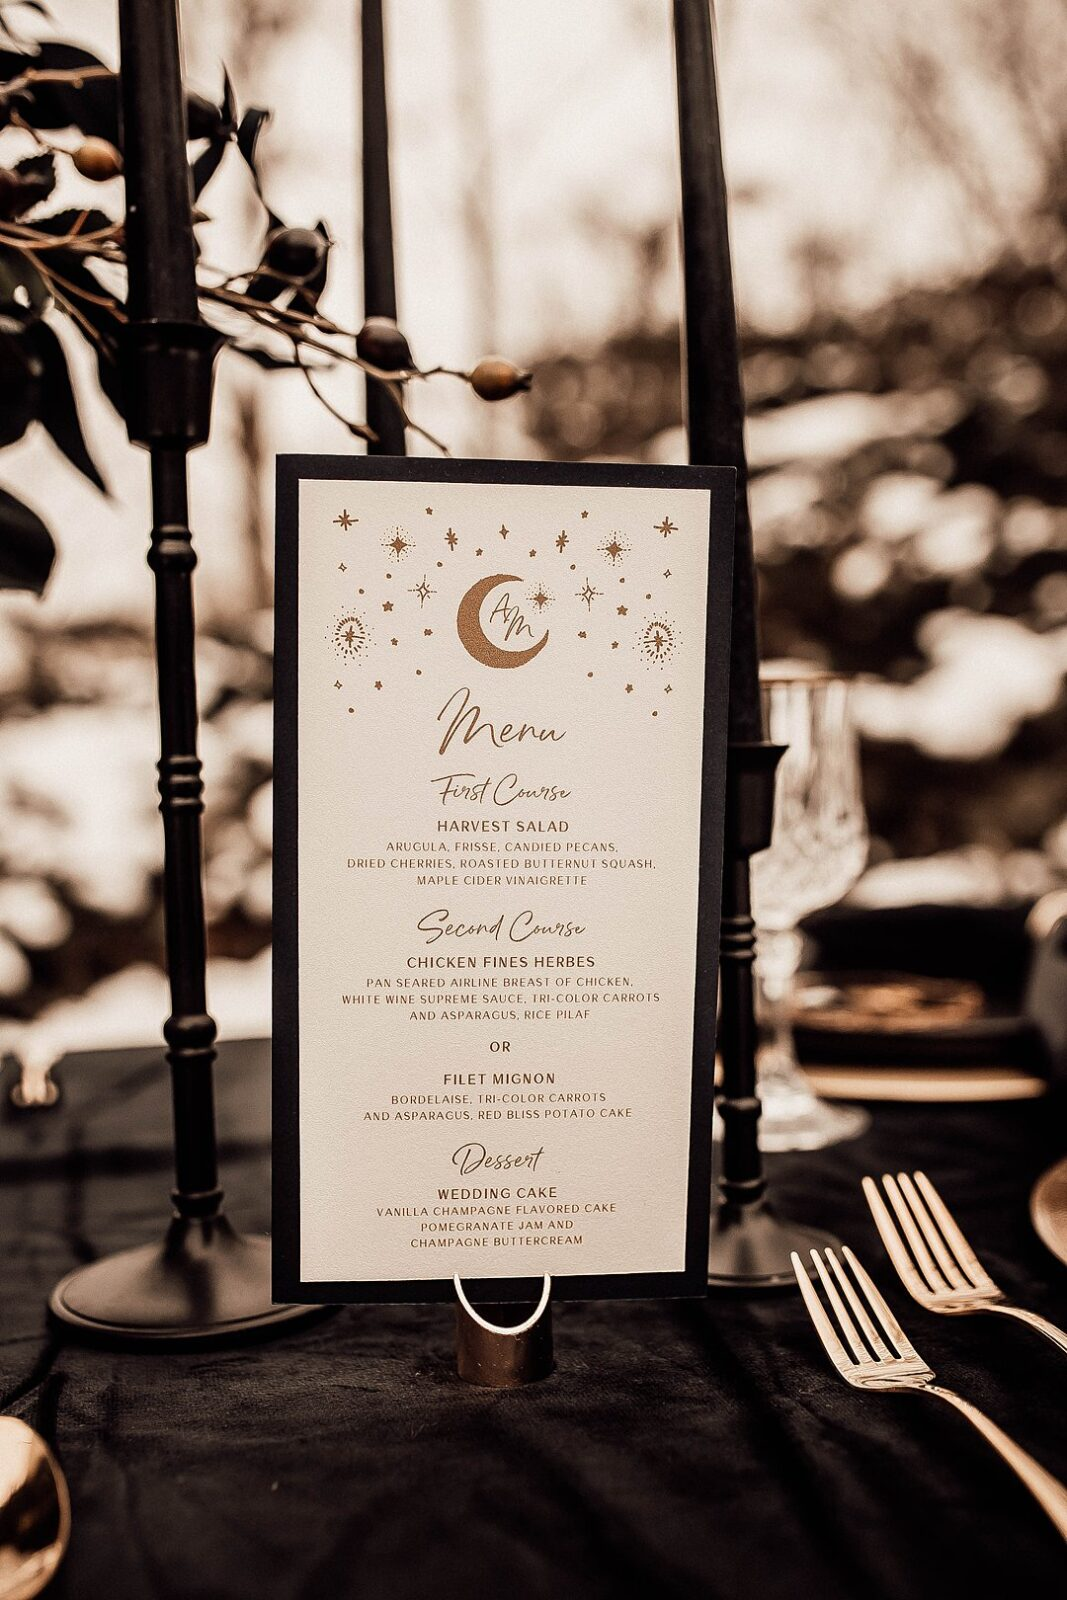 Celestial Wedding Decor Ideas For Your Starry Wedding, Winter Solstice Wedding Inspiration With Moon Star Decorations9